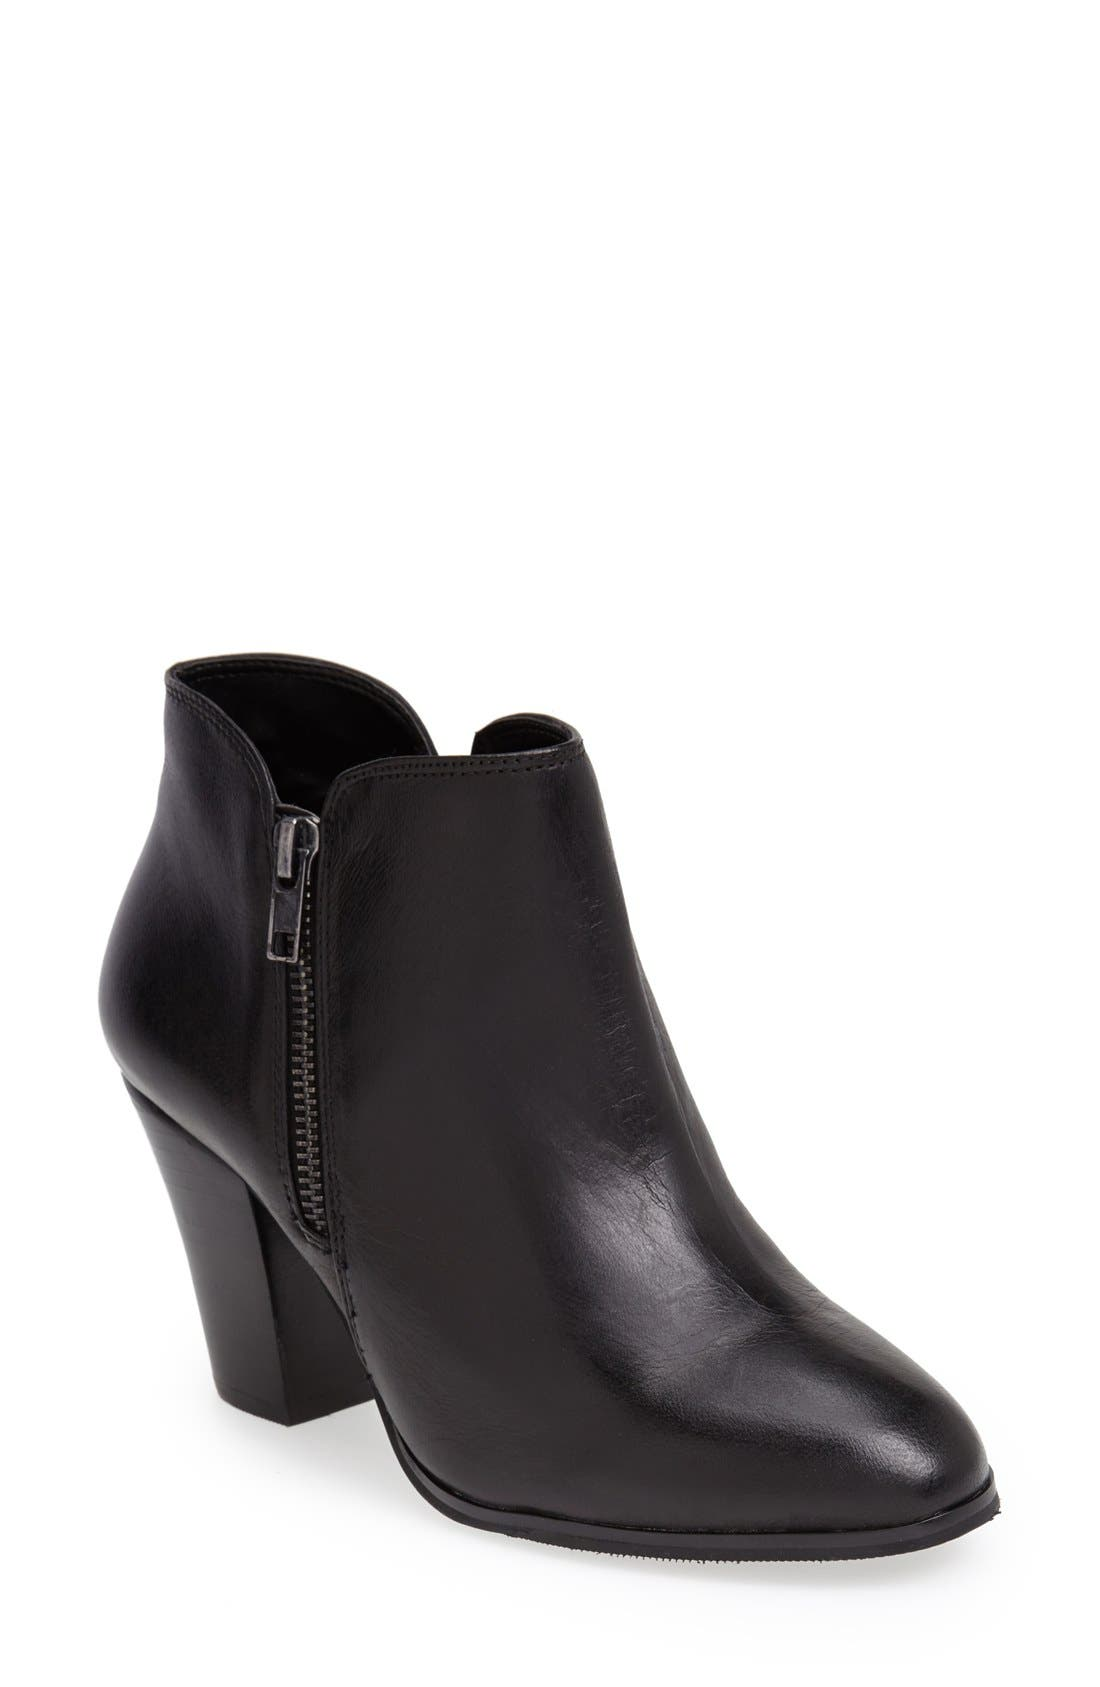 Alternate Image 1 Selected - Sole Society 'Chelsa' Bootie (Women)